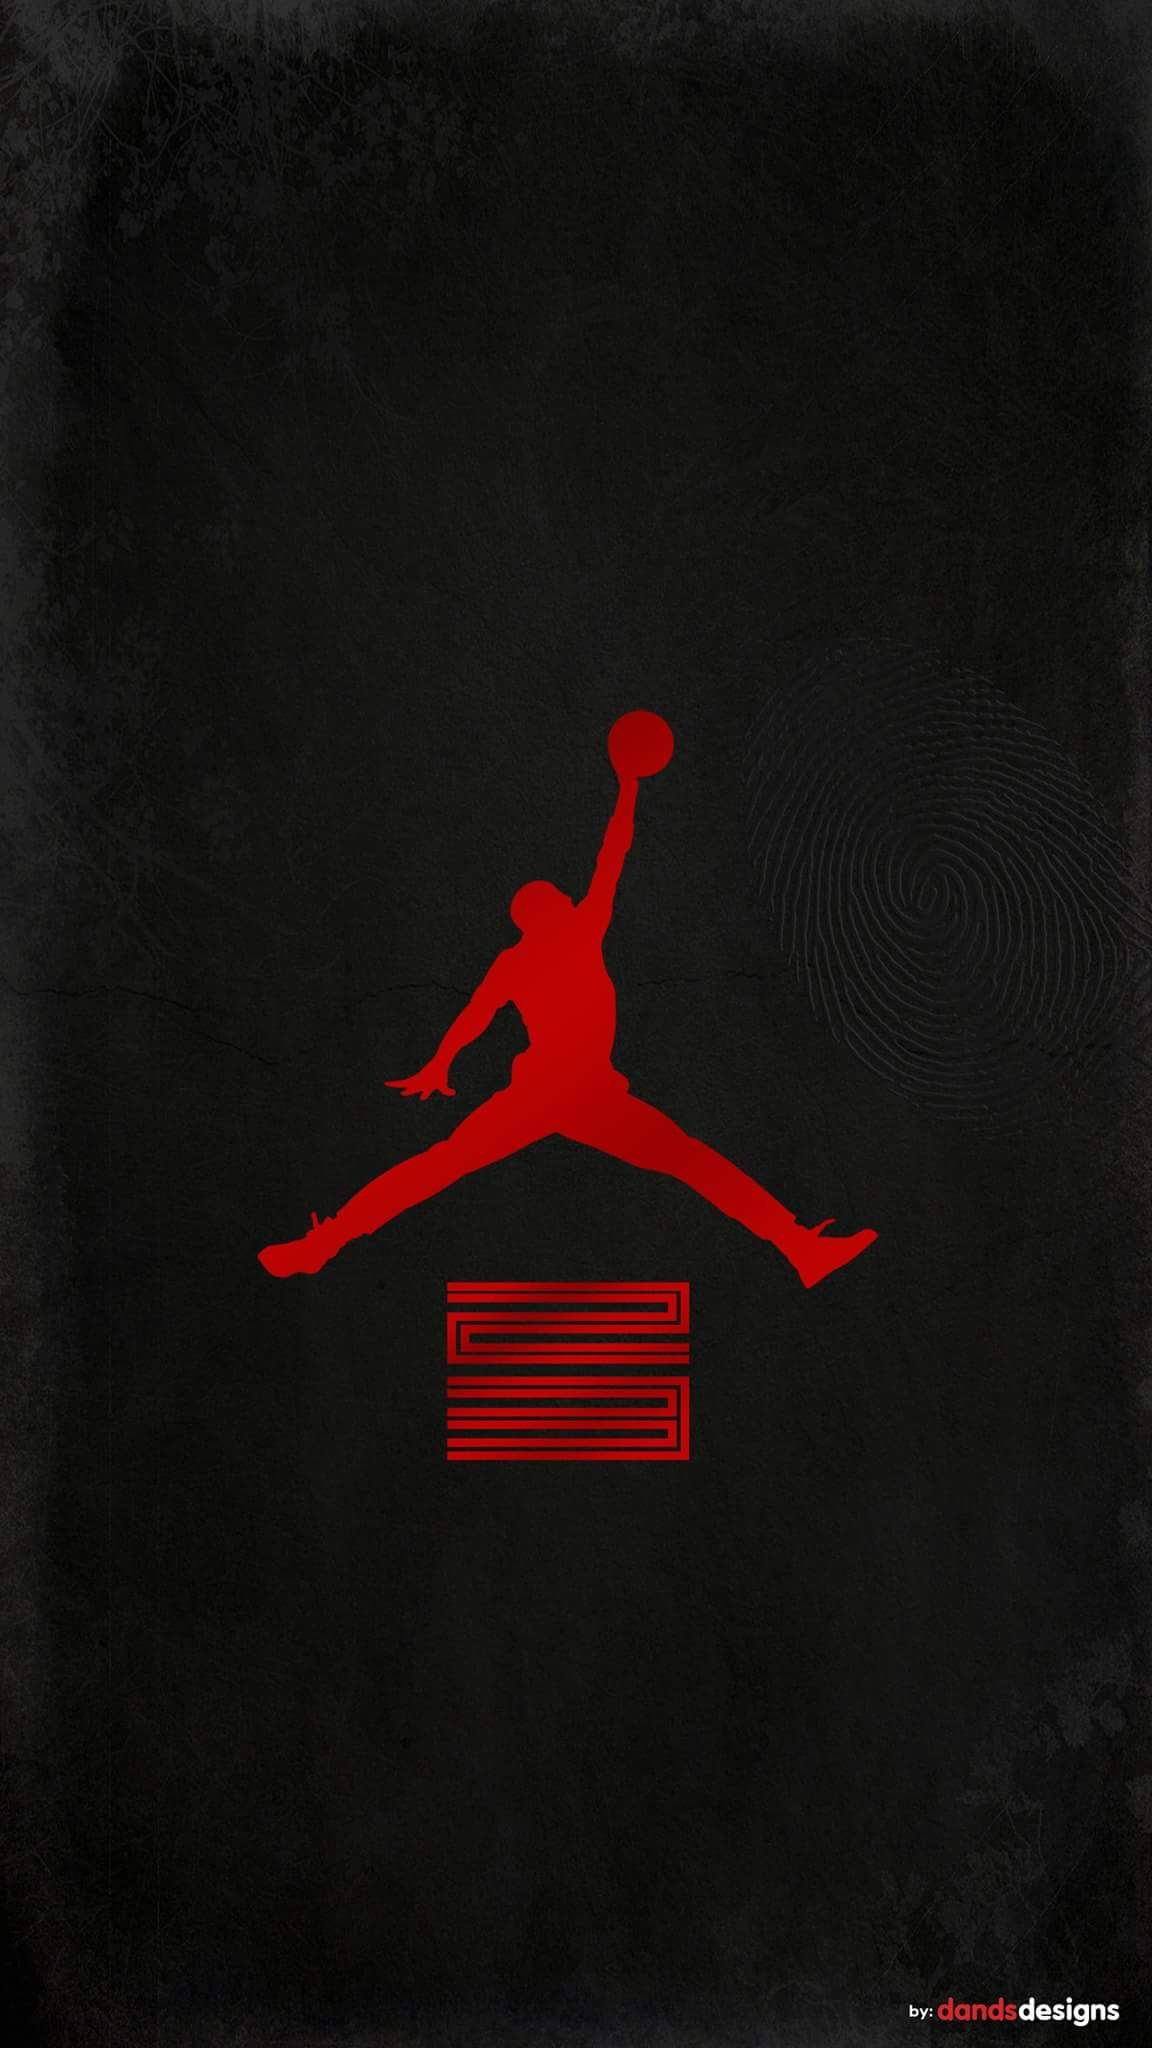 newest bcca6 91b33 Jordan Logo Wallpaper, Nike Wallpaper, Jordan 23, Basketball Pictures,  Sports Basketball,